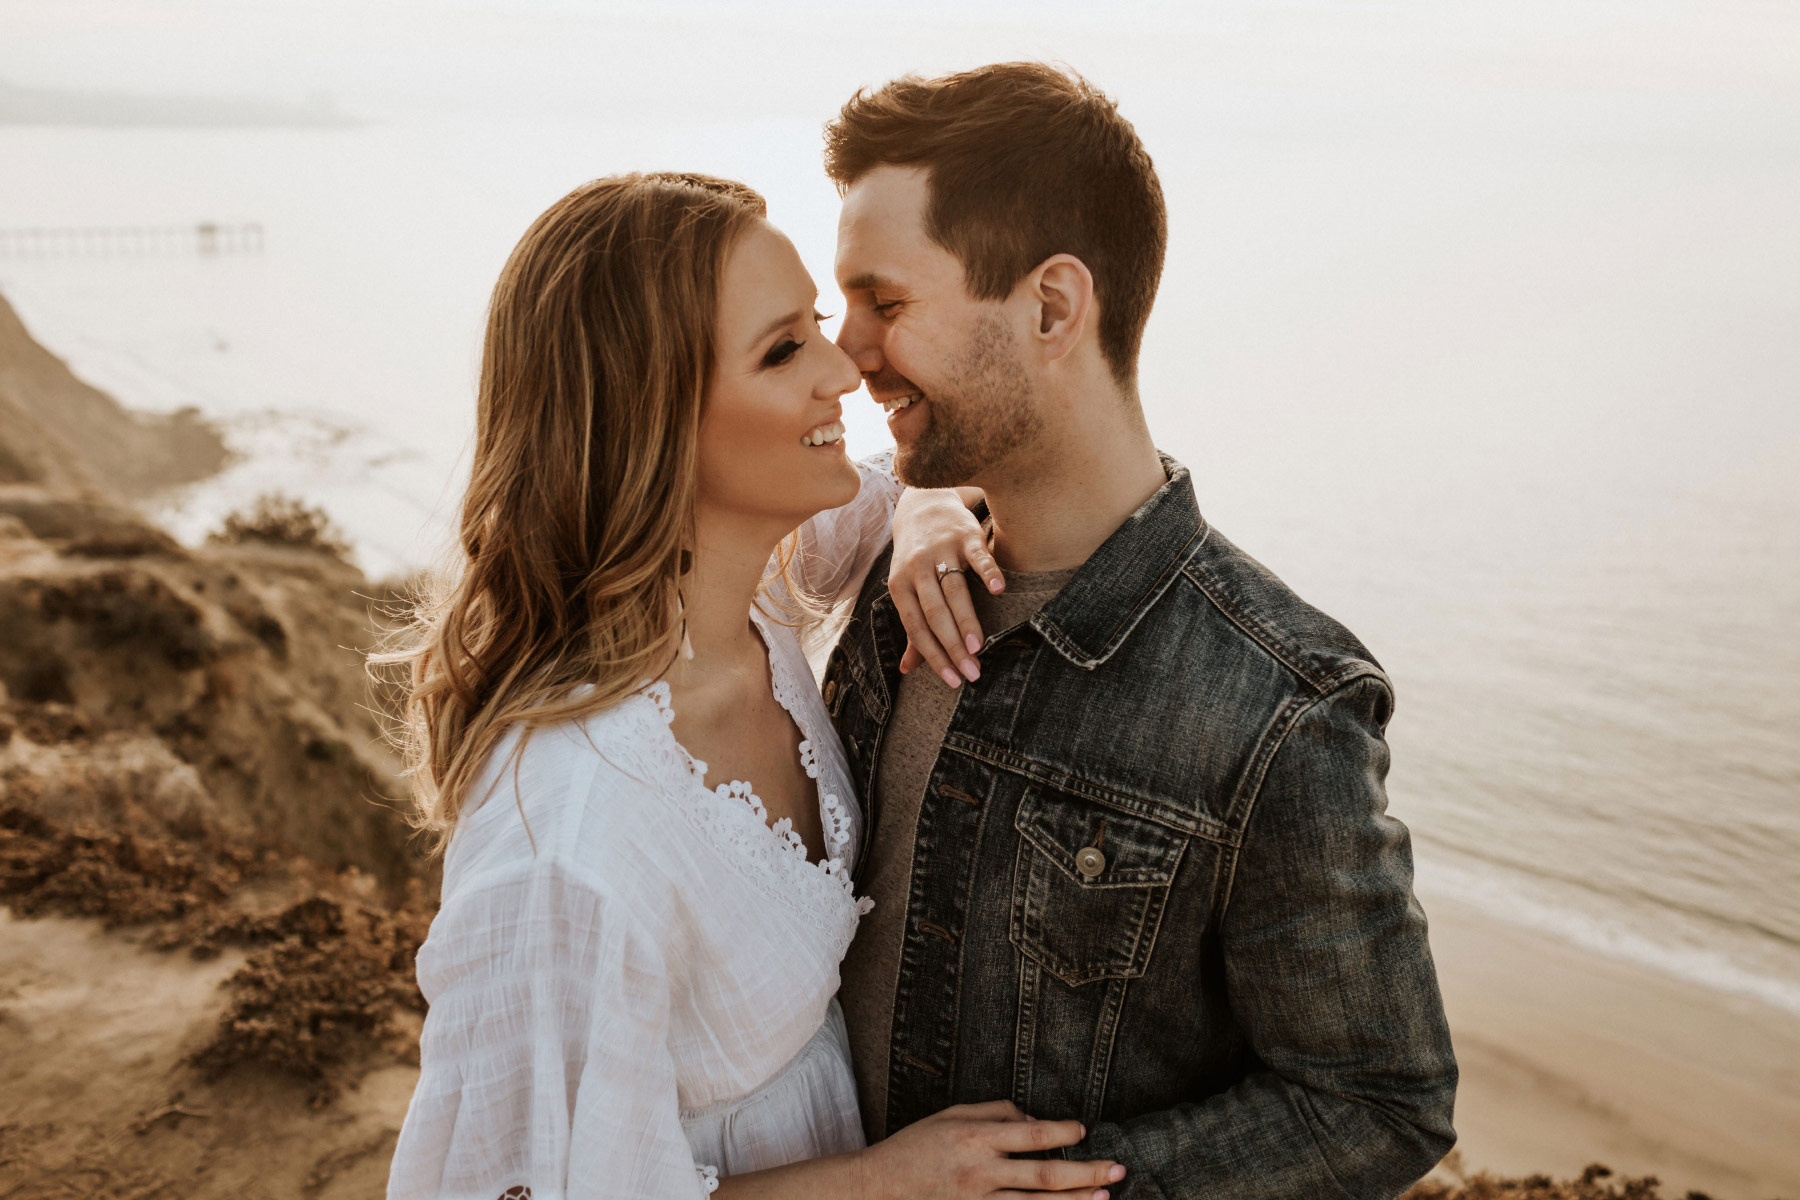 La Jolla Cliffs Engagement : Erica & Michael